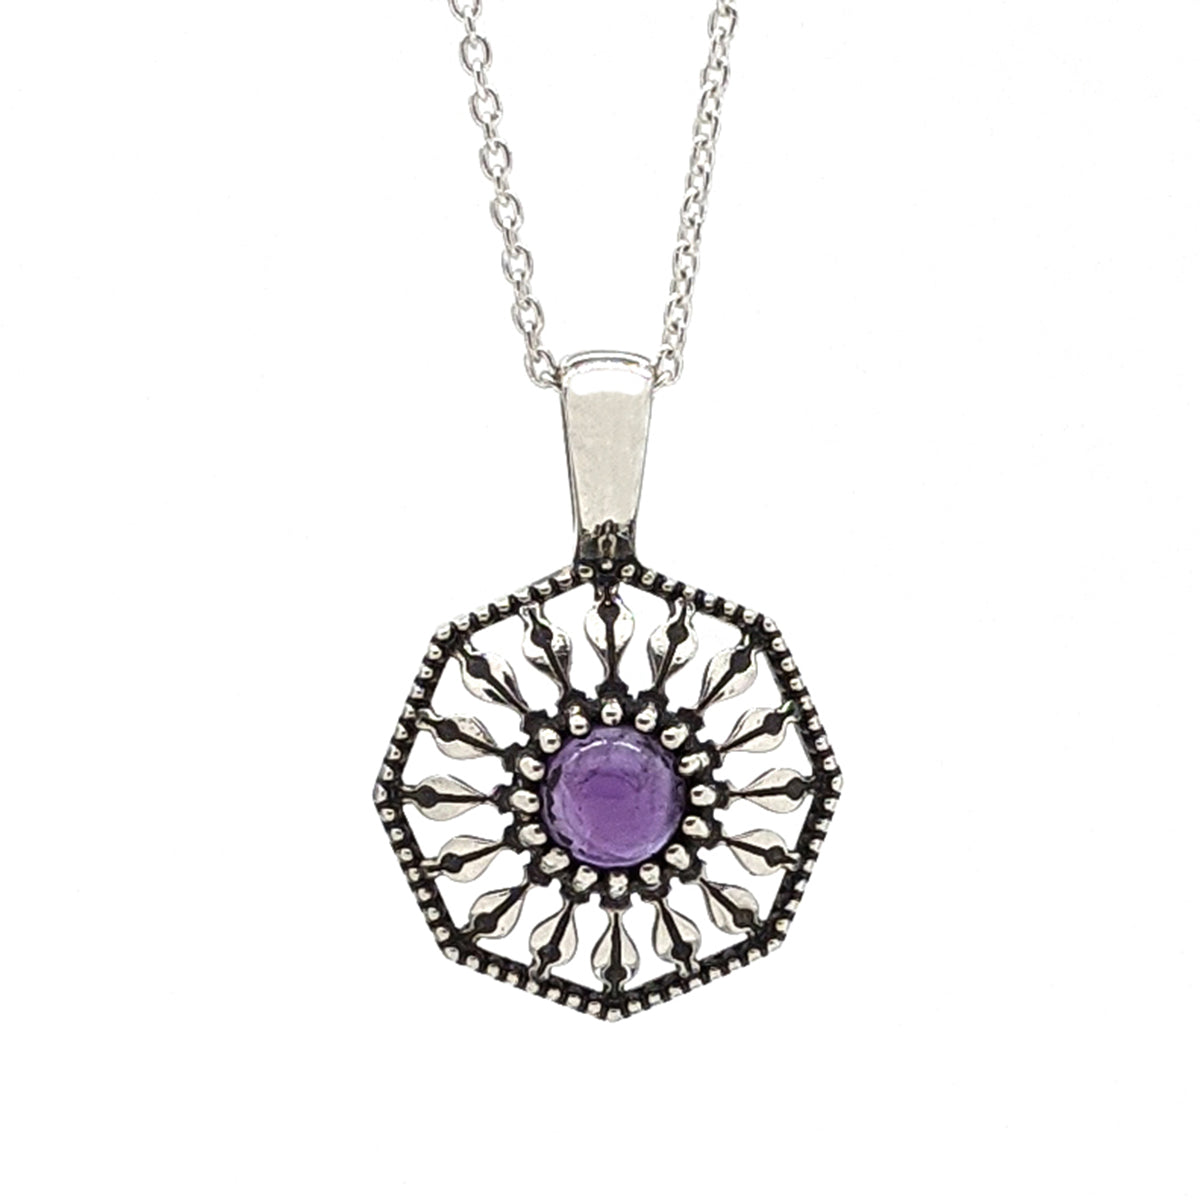 Sterling silver pendant necklace in an octagon shape with a round amethyst gemstone in the center.